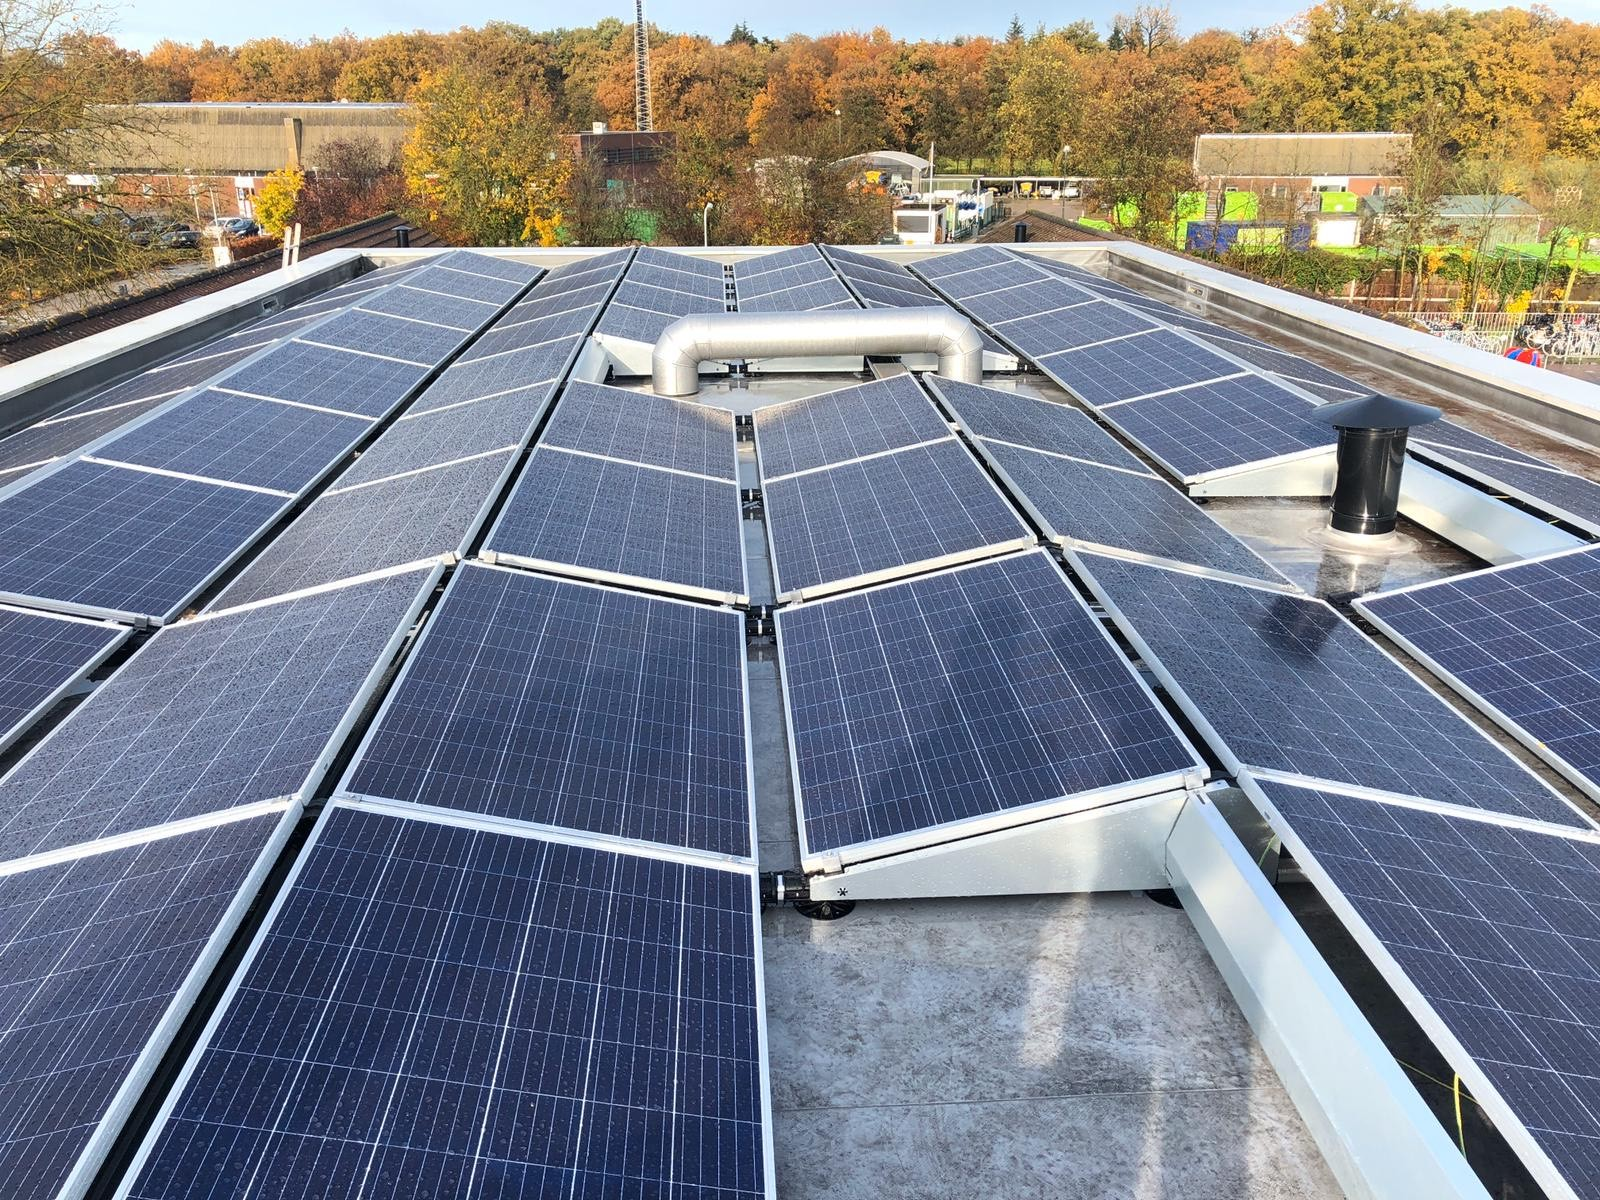 School Zonnepanelen SolarCell